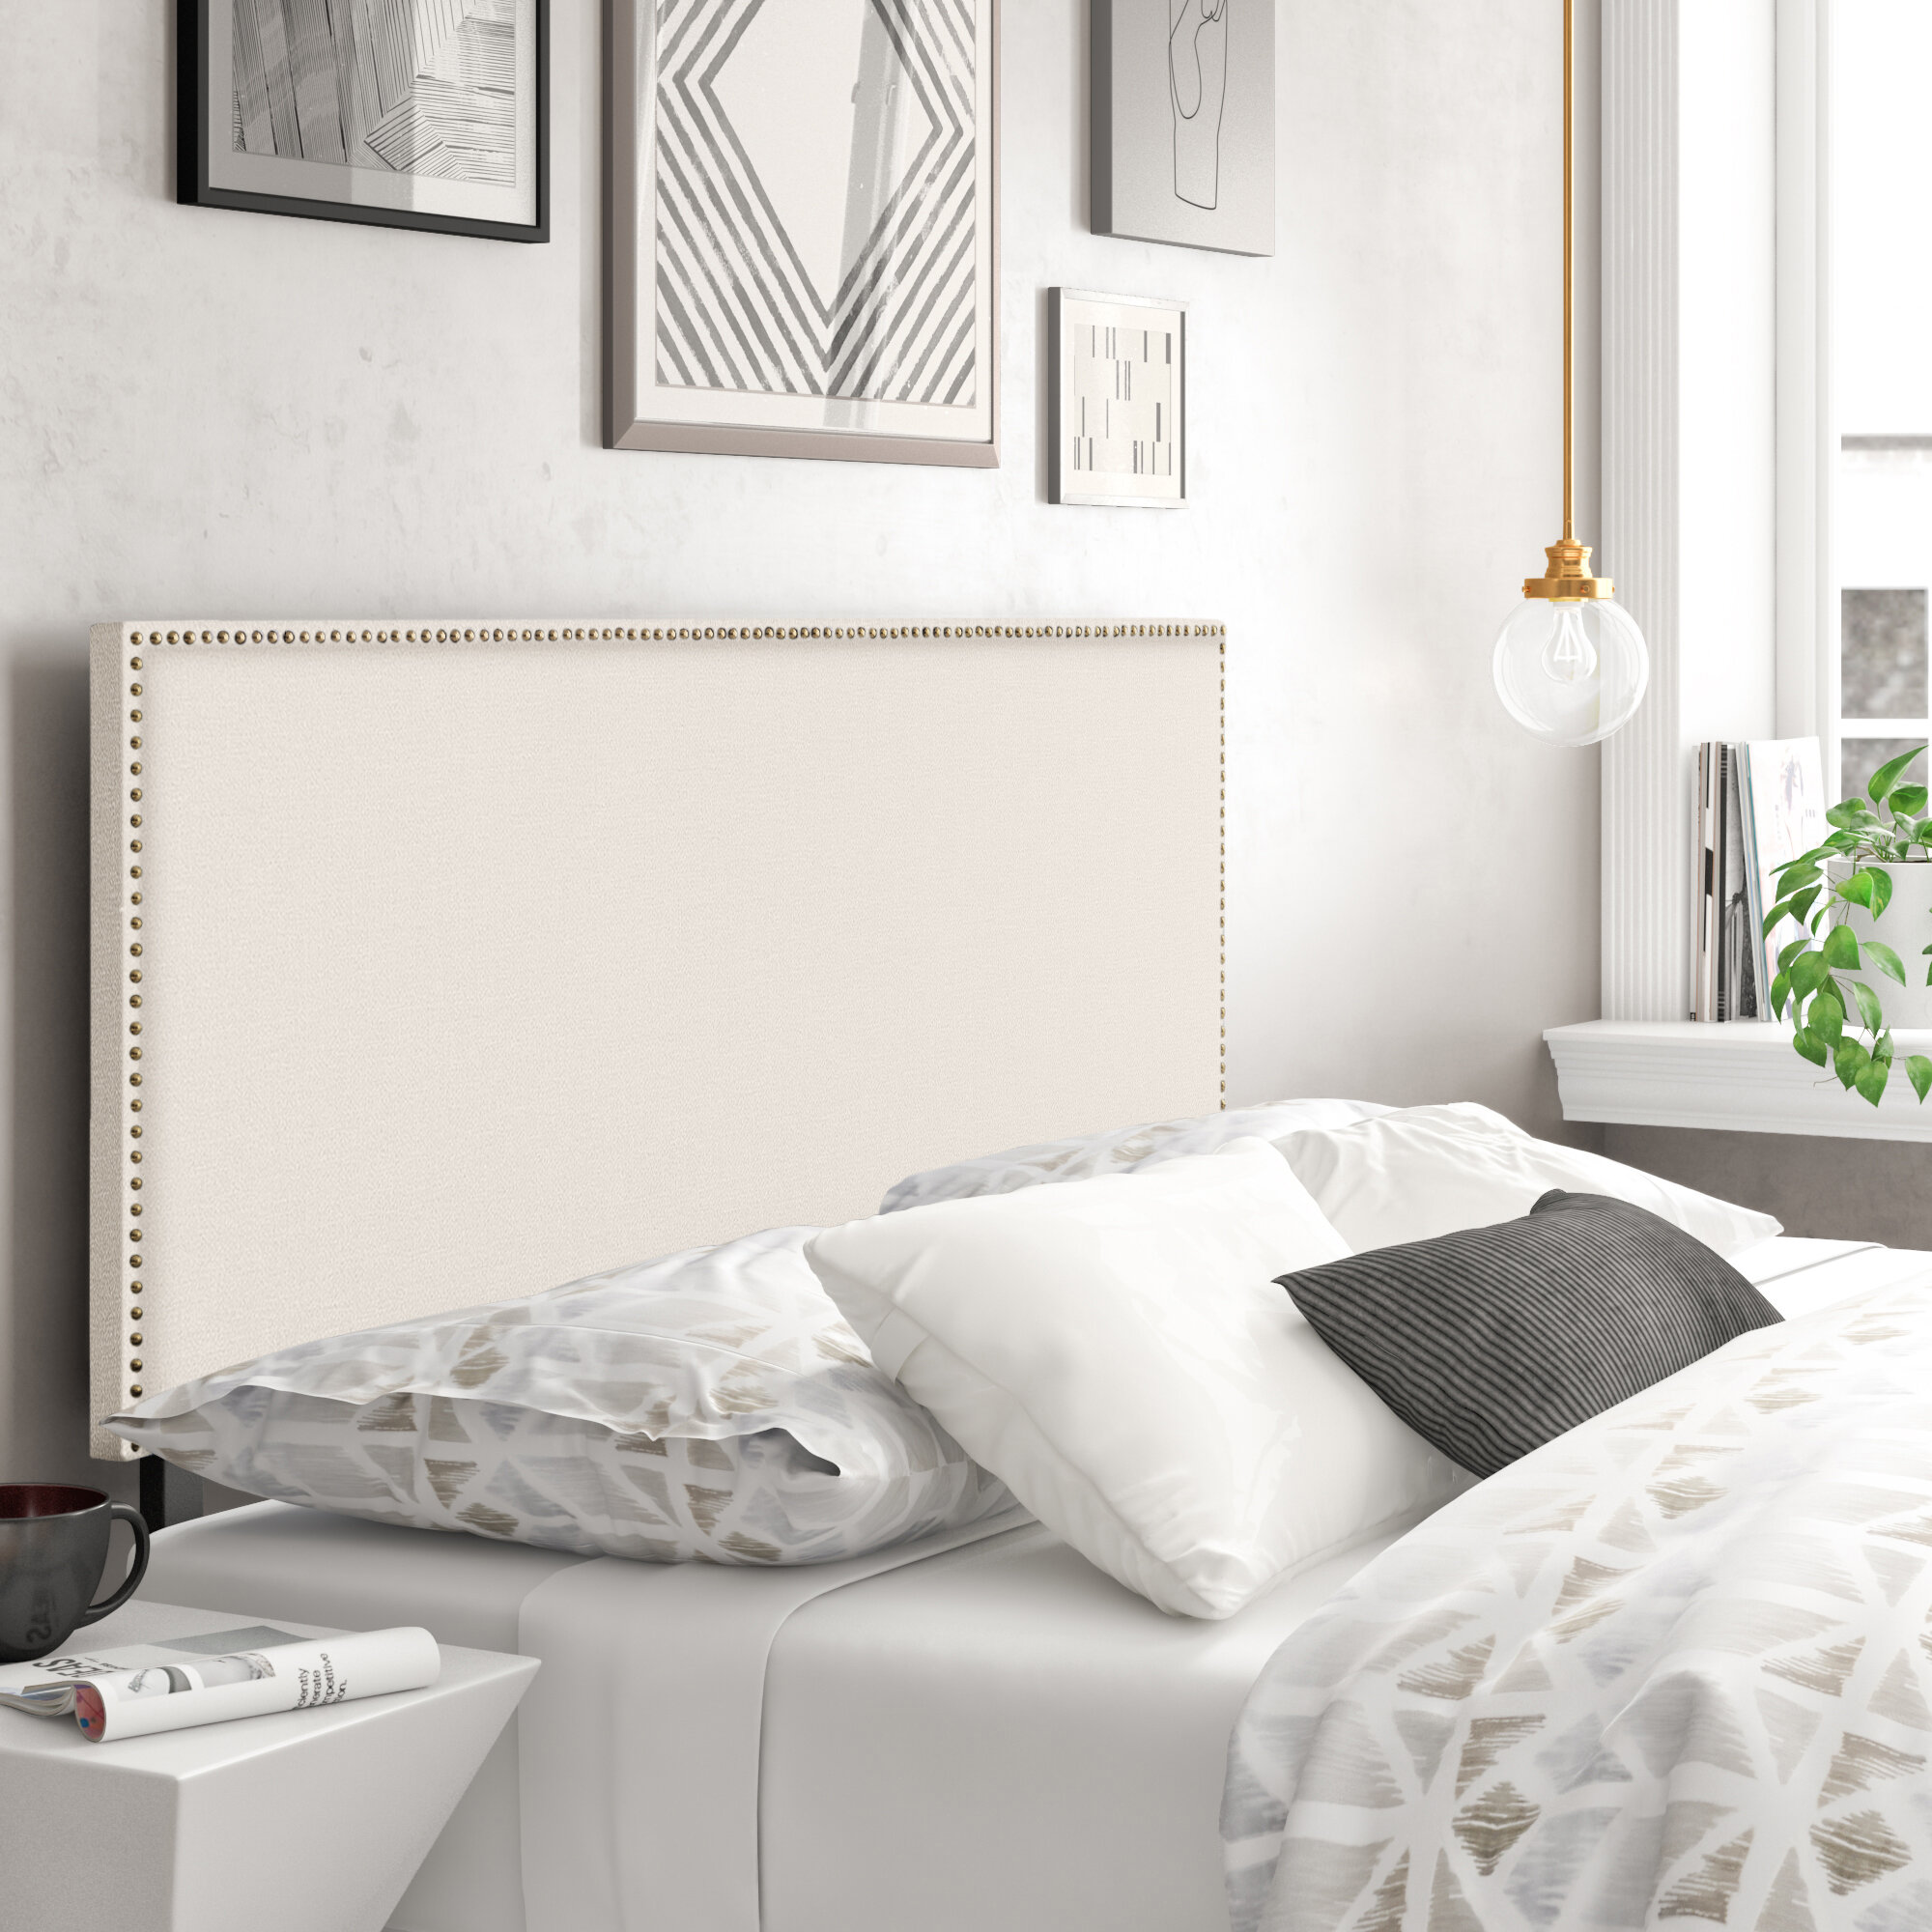 Brown Upholstered Headboards You Ll Love In 2021 Wayfair